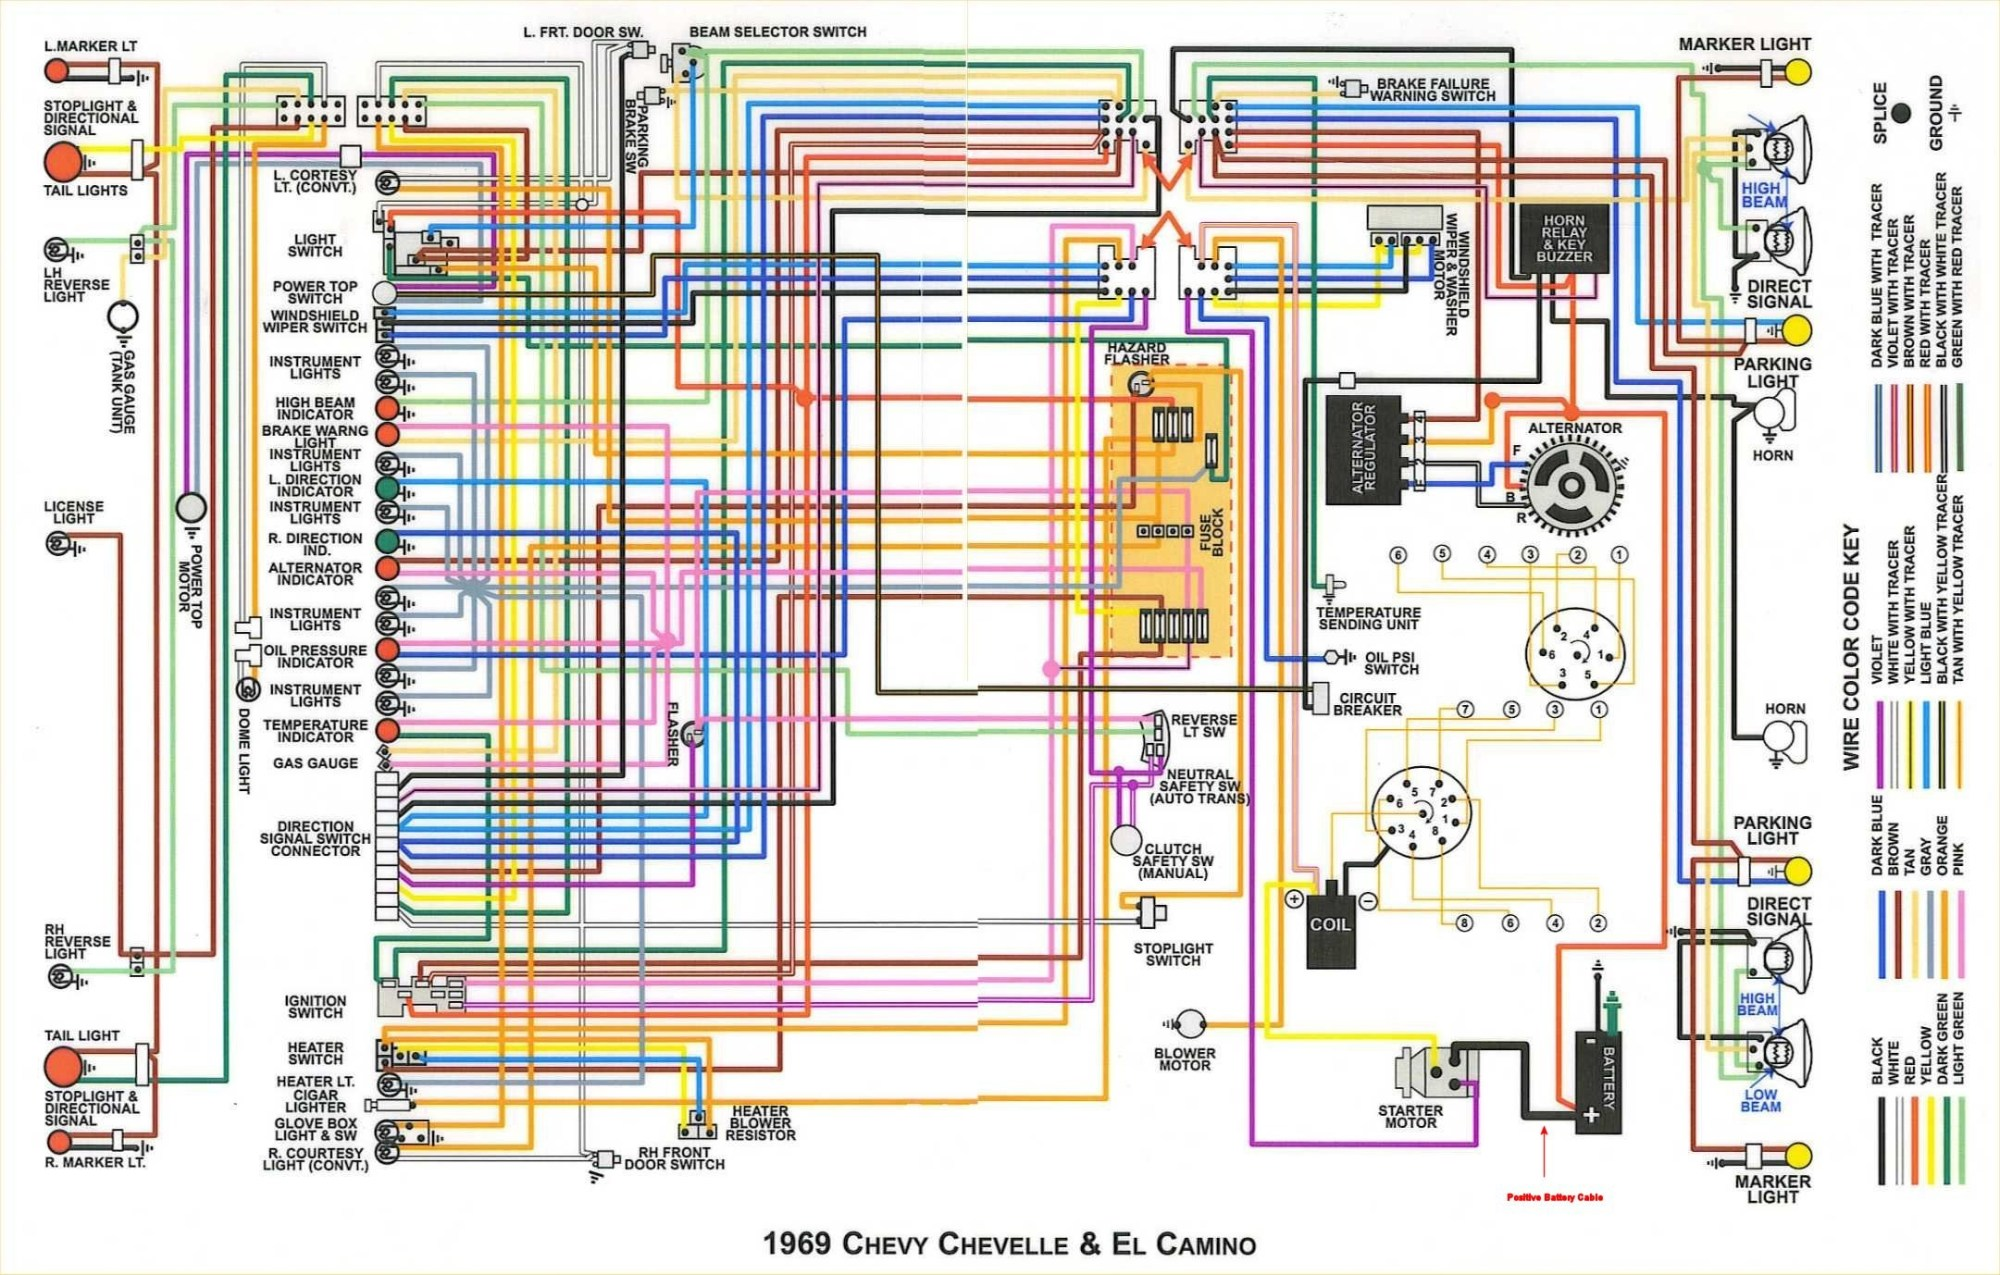 hight resolution of 66 chevelle wiring diagram wiring diagram blog 1966 chevelle wiper motor wiring diagram free picture